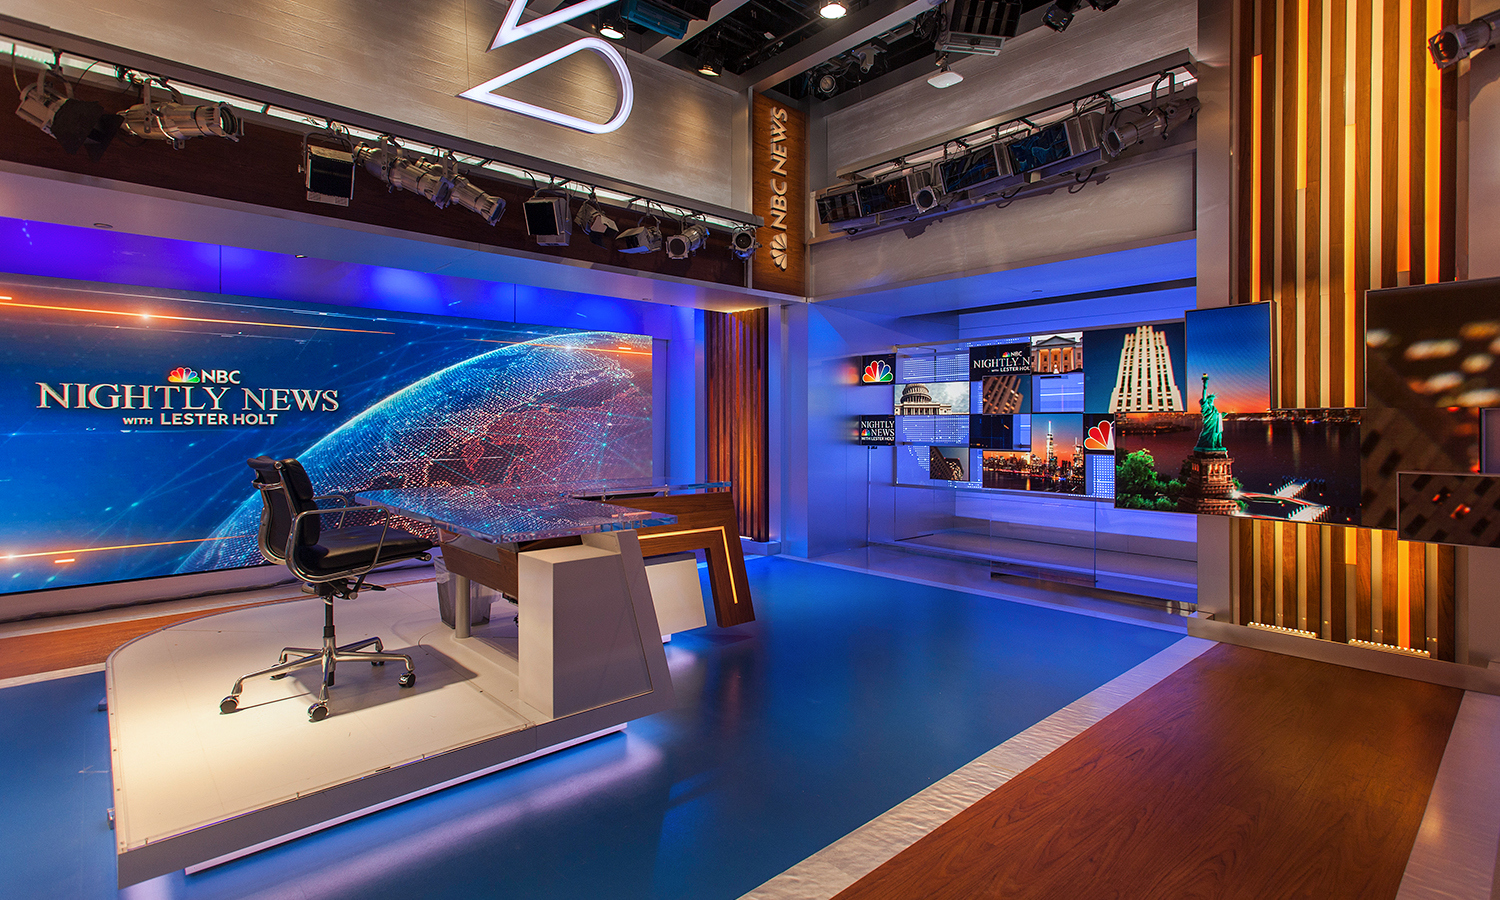 Design By: NBC Nightly News / Studio 3C Studio Design Gallery